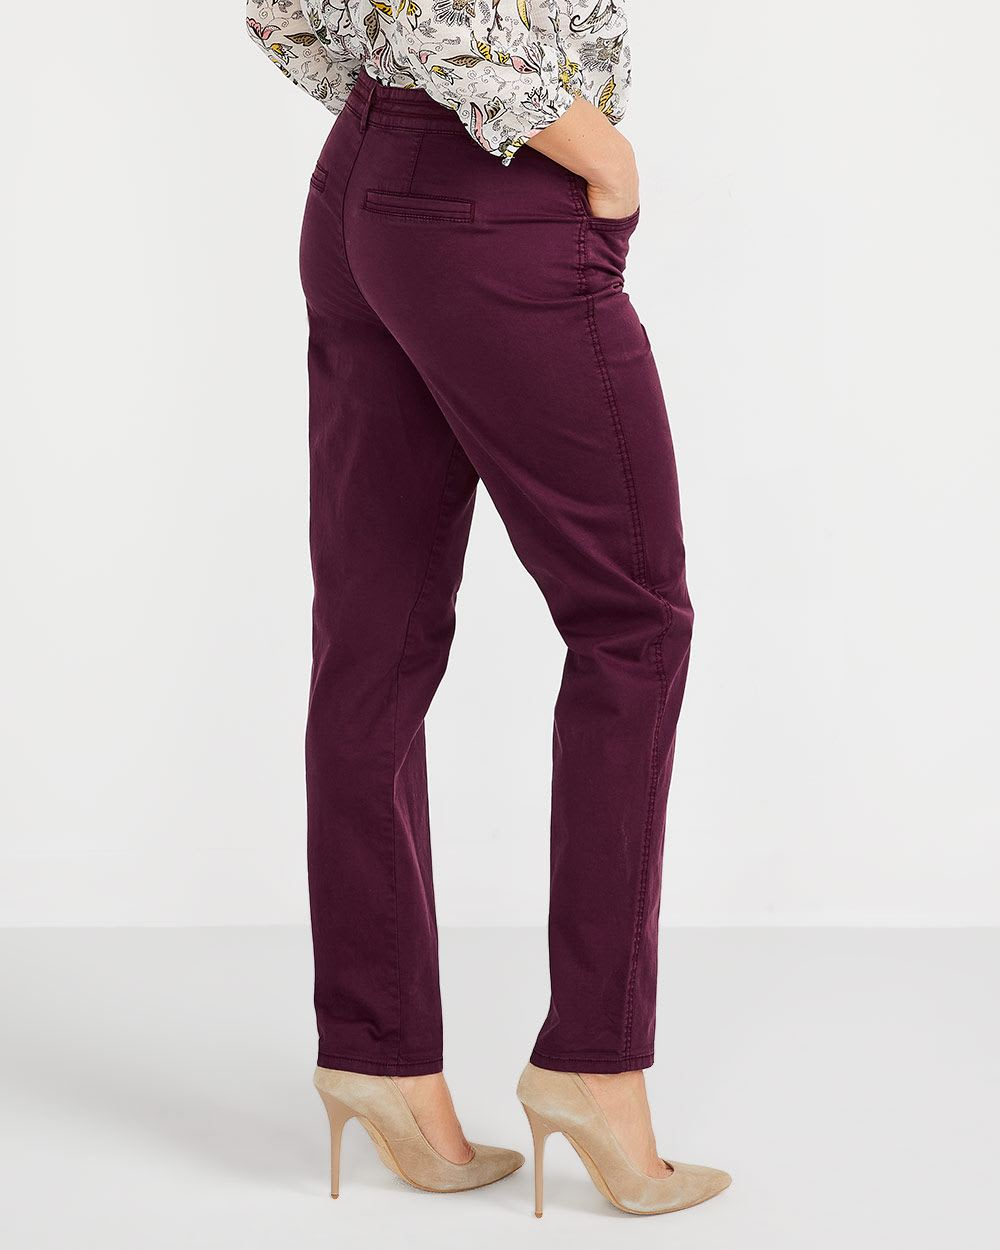 Pantalon Chino à jambe étroite Long